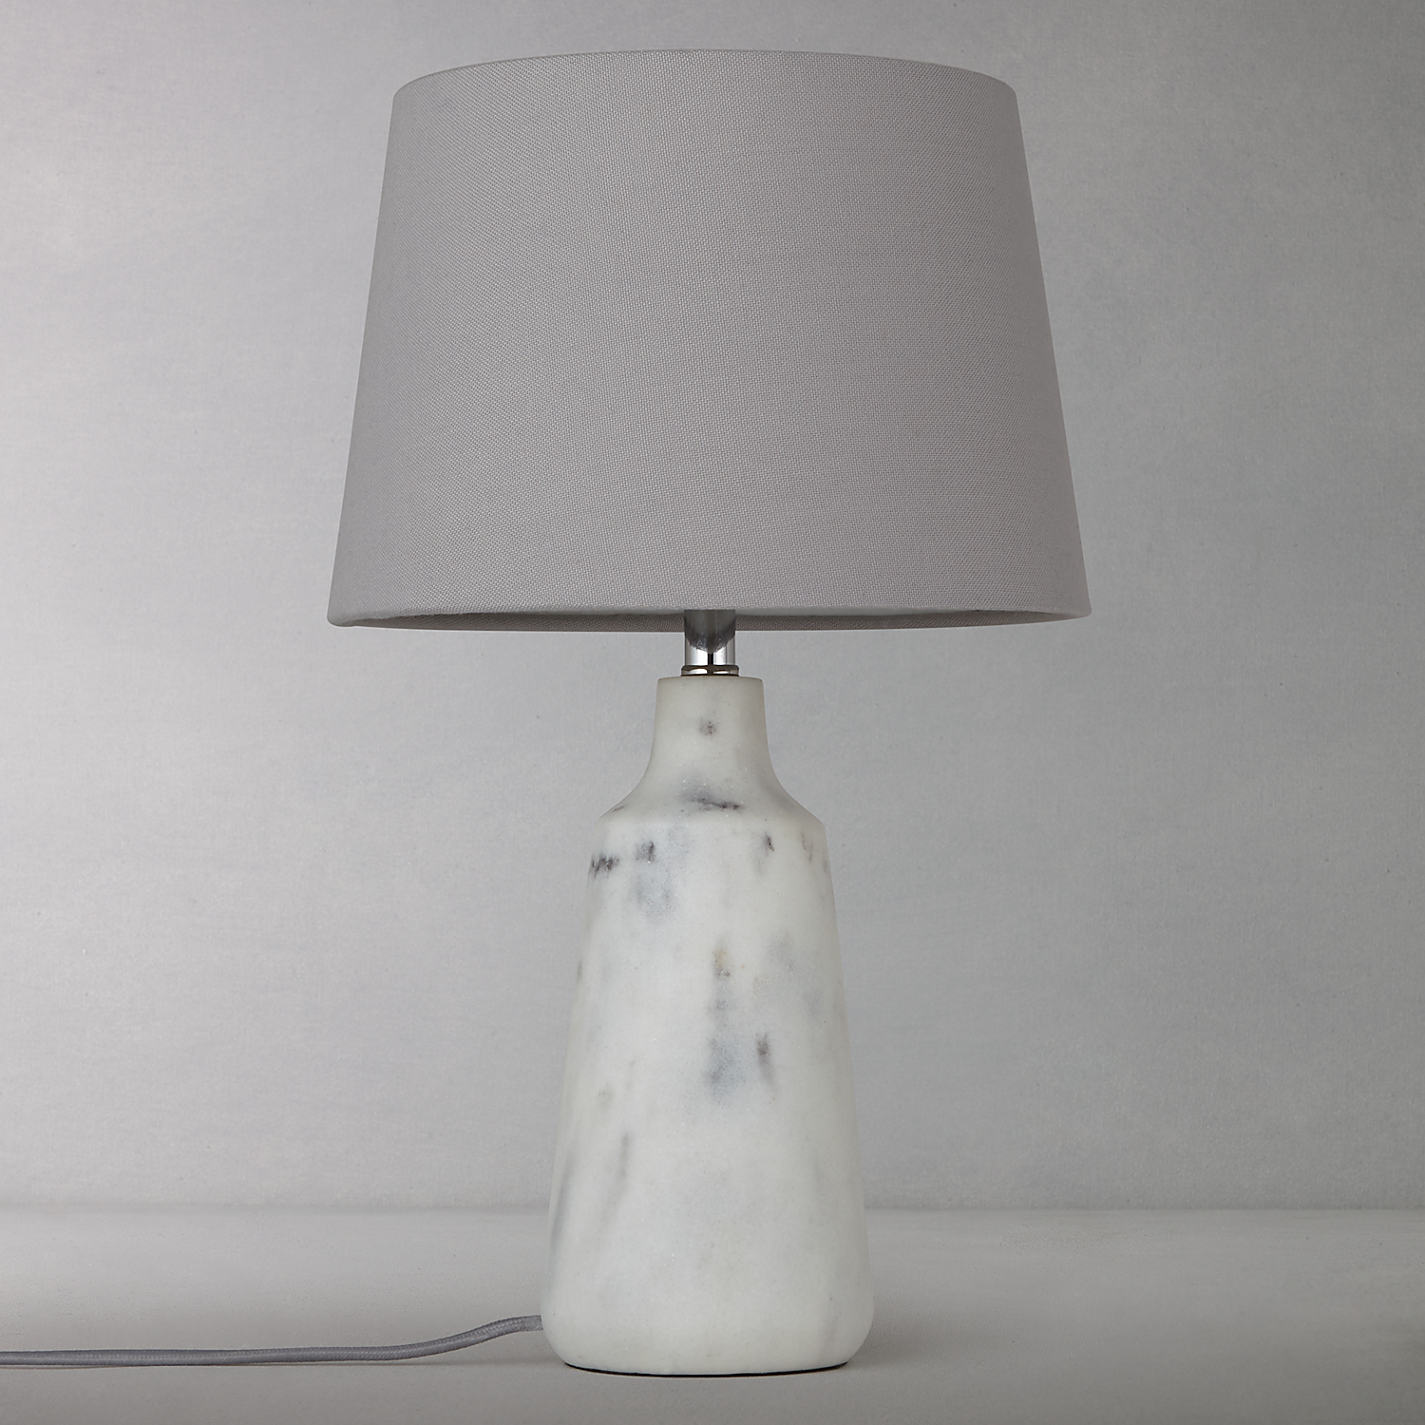 John lewis bedroom lamps scifihits john lewis croft collection linney marble finish table lamp geotapseo Image collections